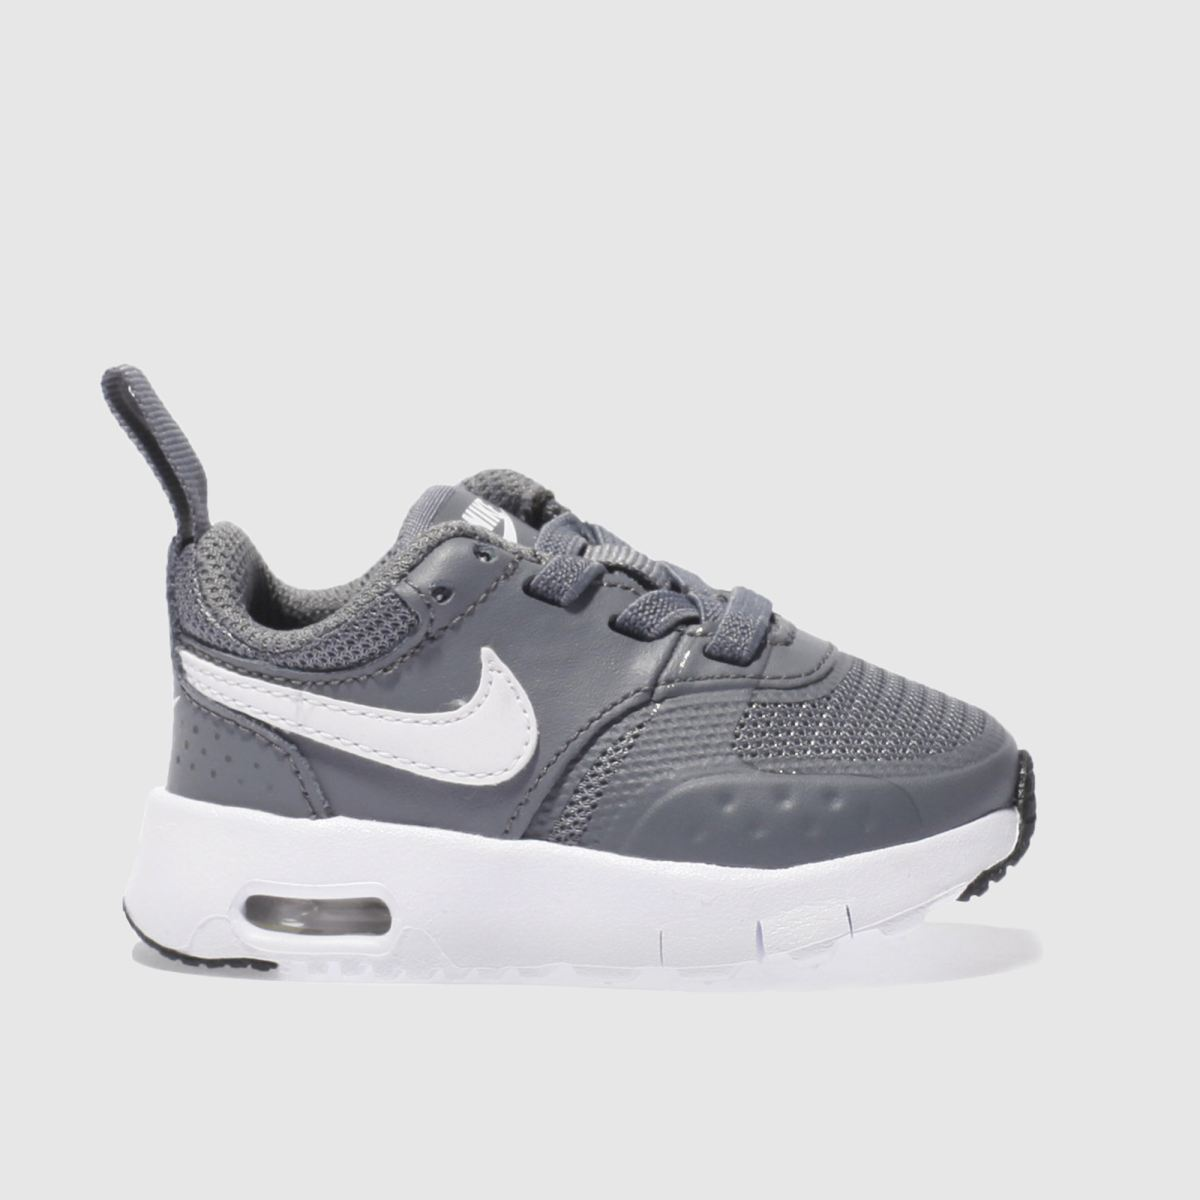 nike grey air max vision Toddler Trainers